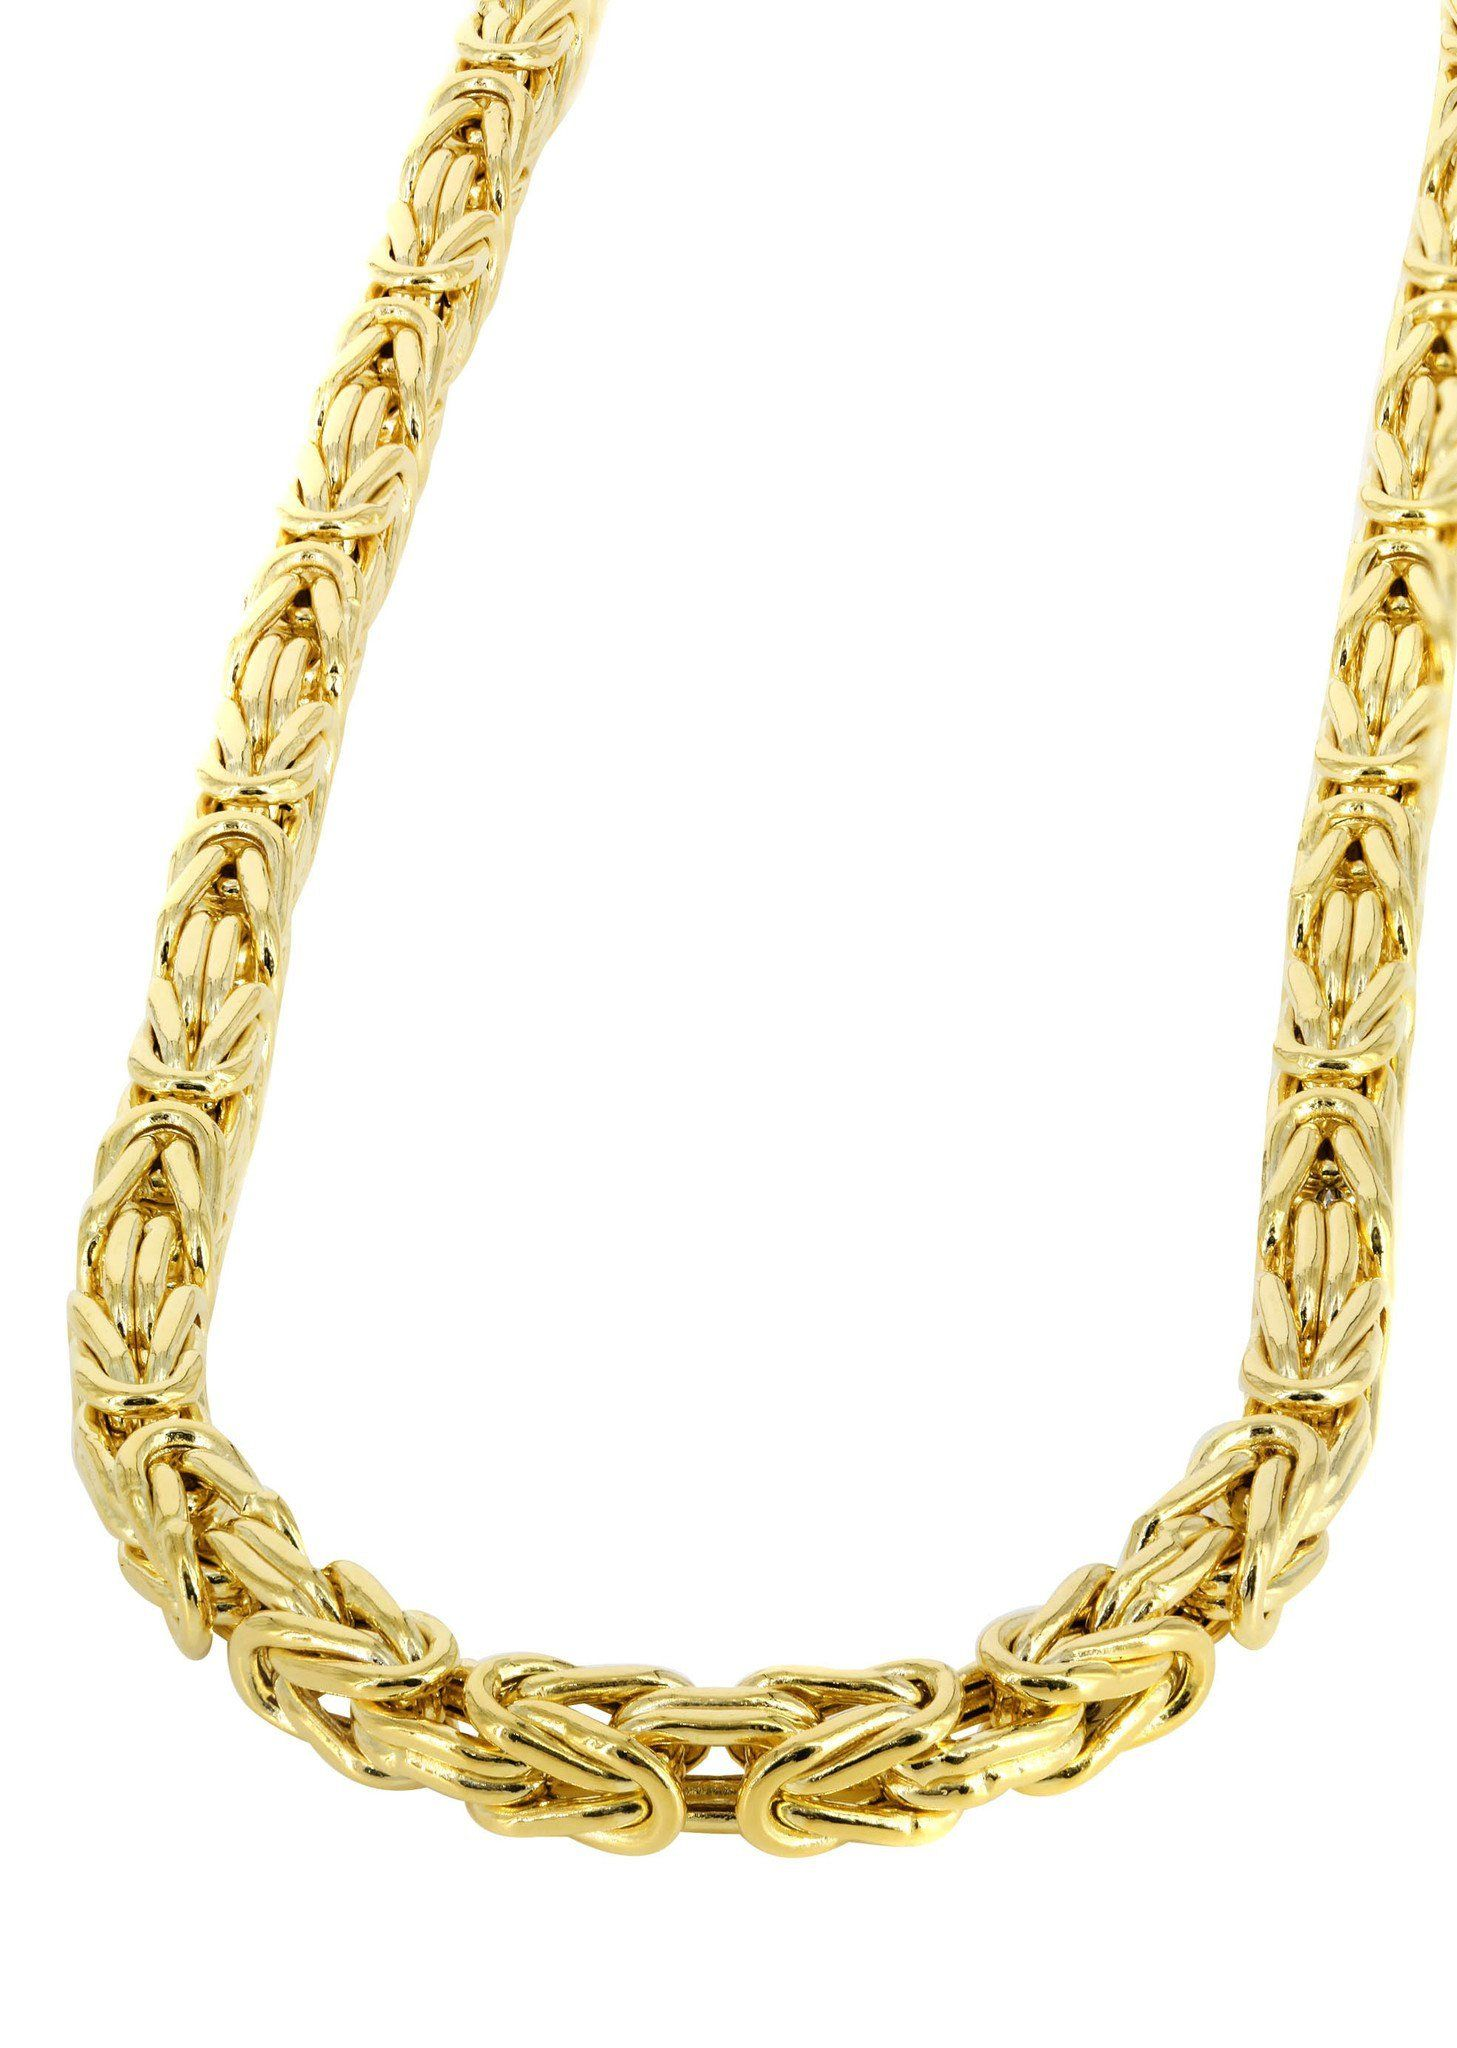 Gold Chain Mens Italian Bizantine Chain 10k Gold In 2020 Real Gold Chains Mens Gold Jewelry Gold Chains For Men